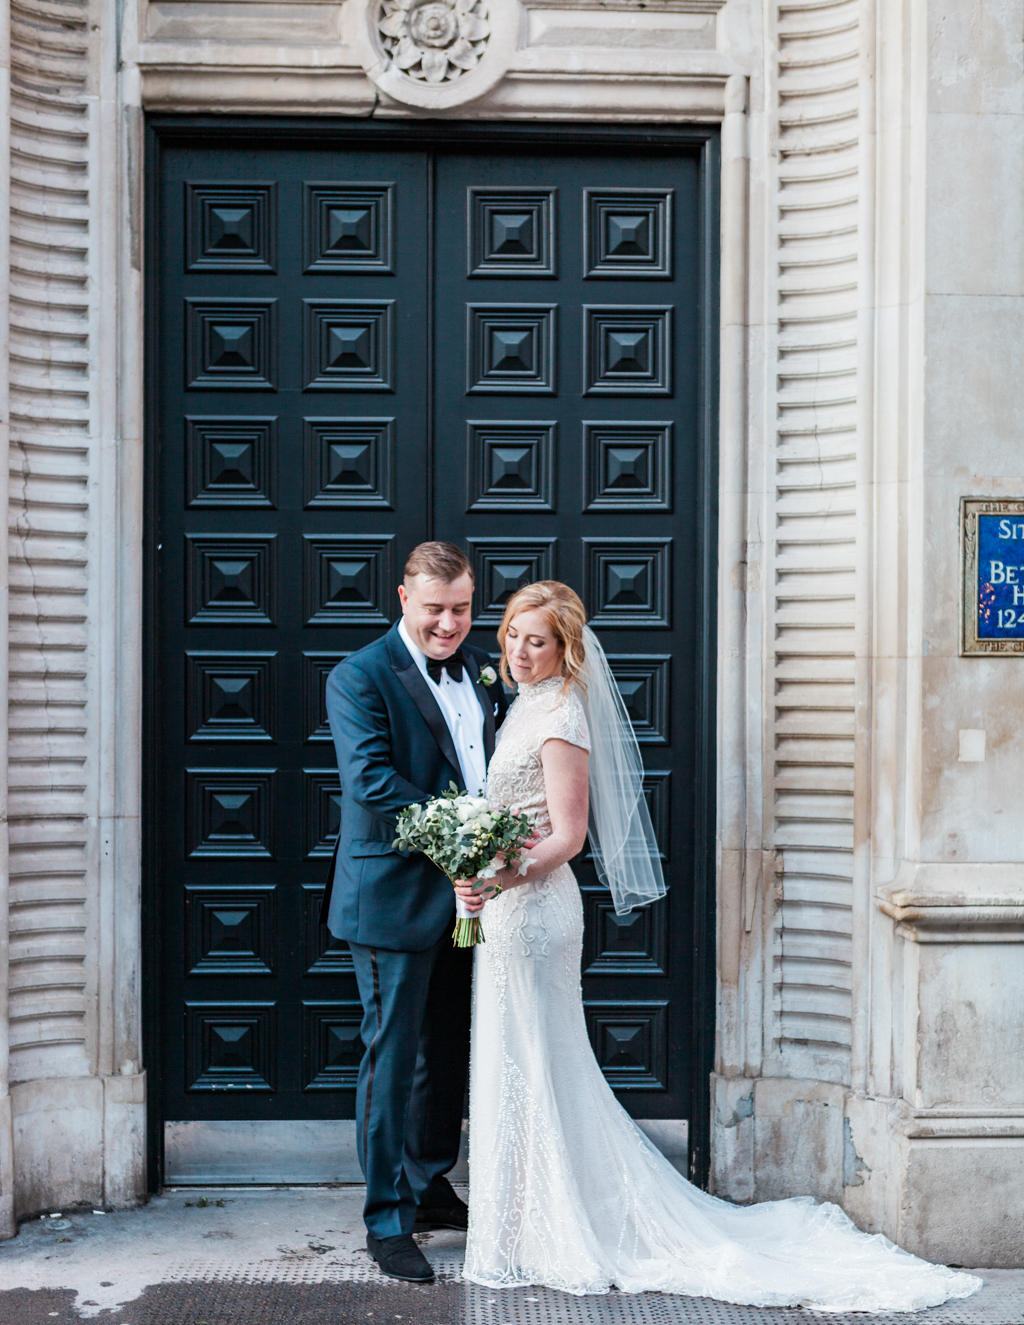 Rebecca & Tom's gloriously glamorous Andaz Hotel wedding, with Amanda Karen Photography (9)